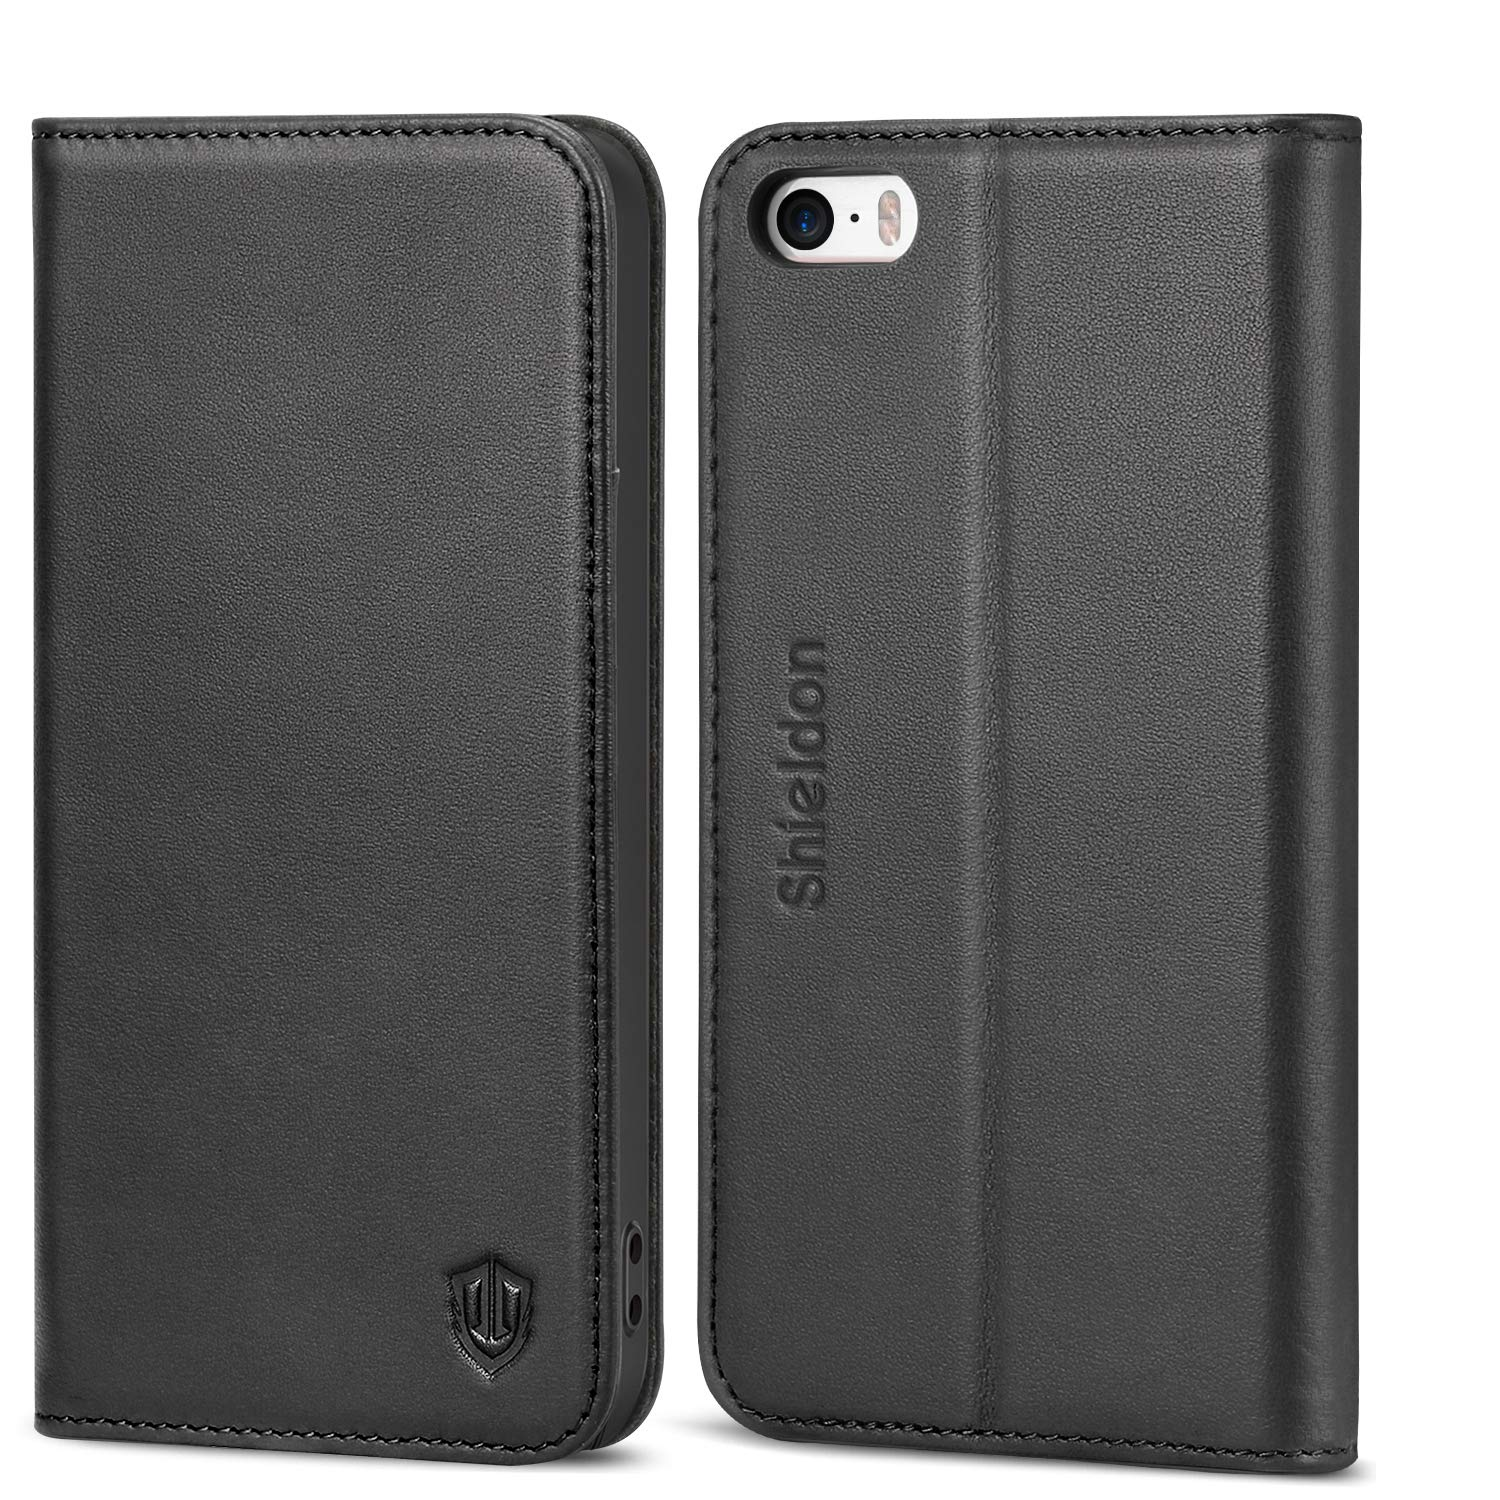 new product 5be2d 97a3d SHIELDON iPhone SE Case, iPhone 5S Wallet Case, Genuine Leather Case Slim  Flip Cover with Kickstand and ID Card Holder, Magnetic Closure Compatible  ...